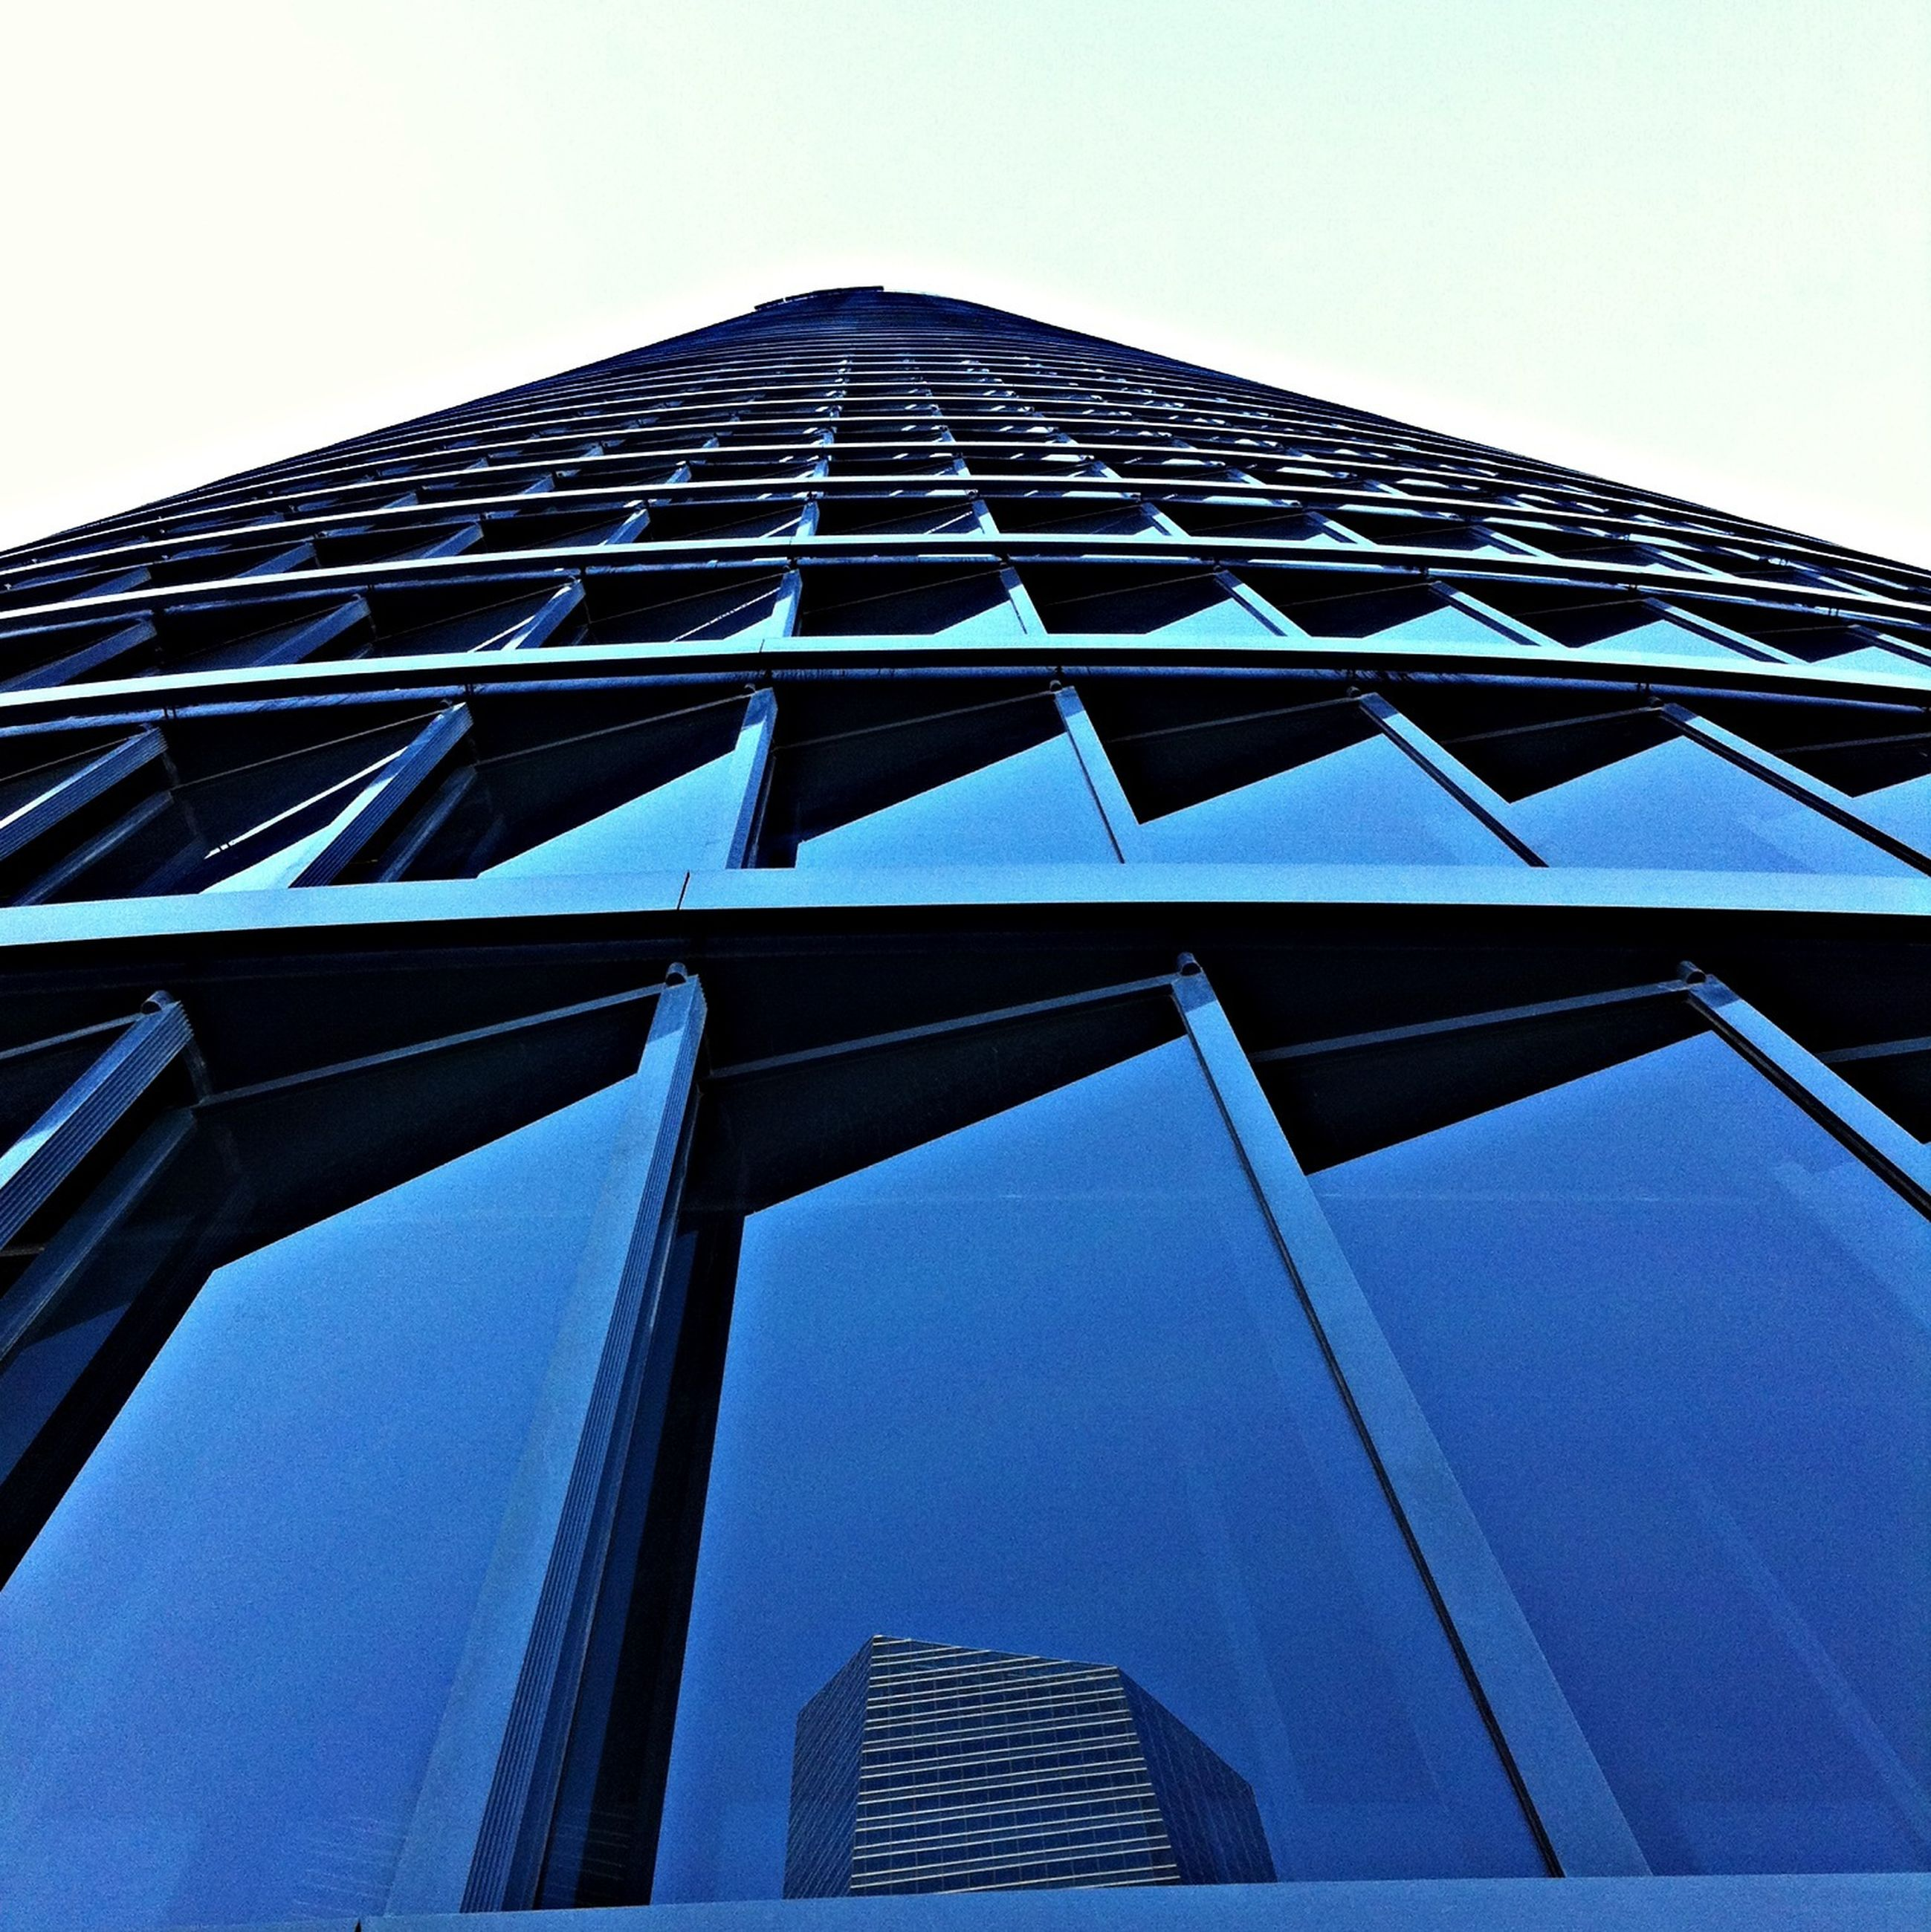 low angle view, architecture, building exterior, built structure, modern, office building, skyscraper, tall - high, city, tower, building, glass - material, clear sky, reflection, sky, window, day, tall, no people, outdoors